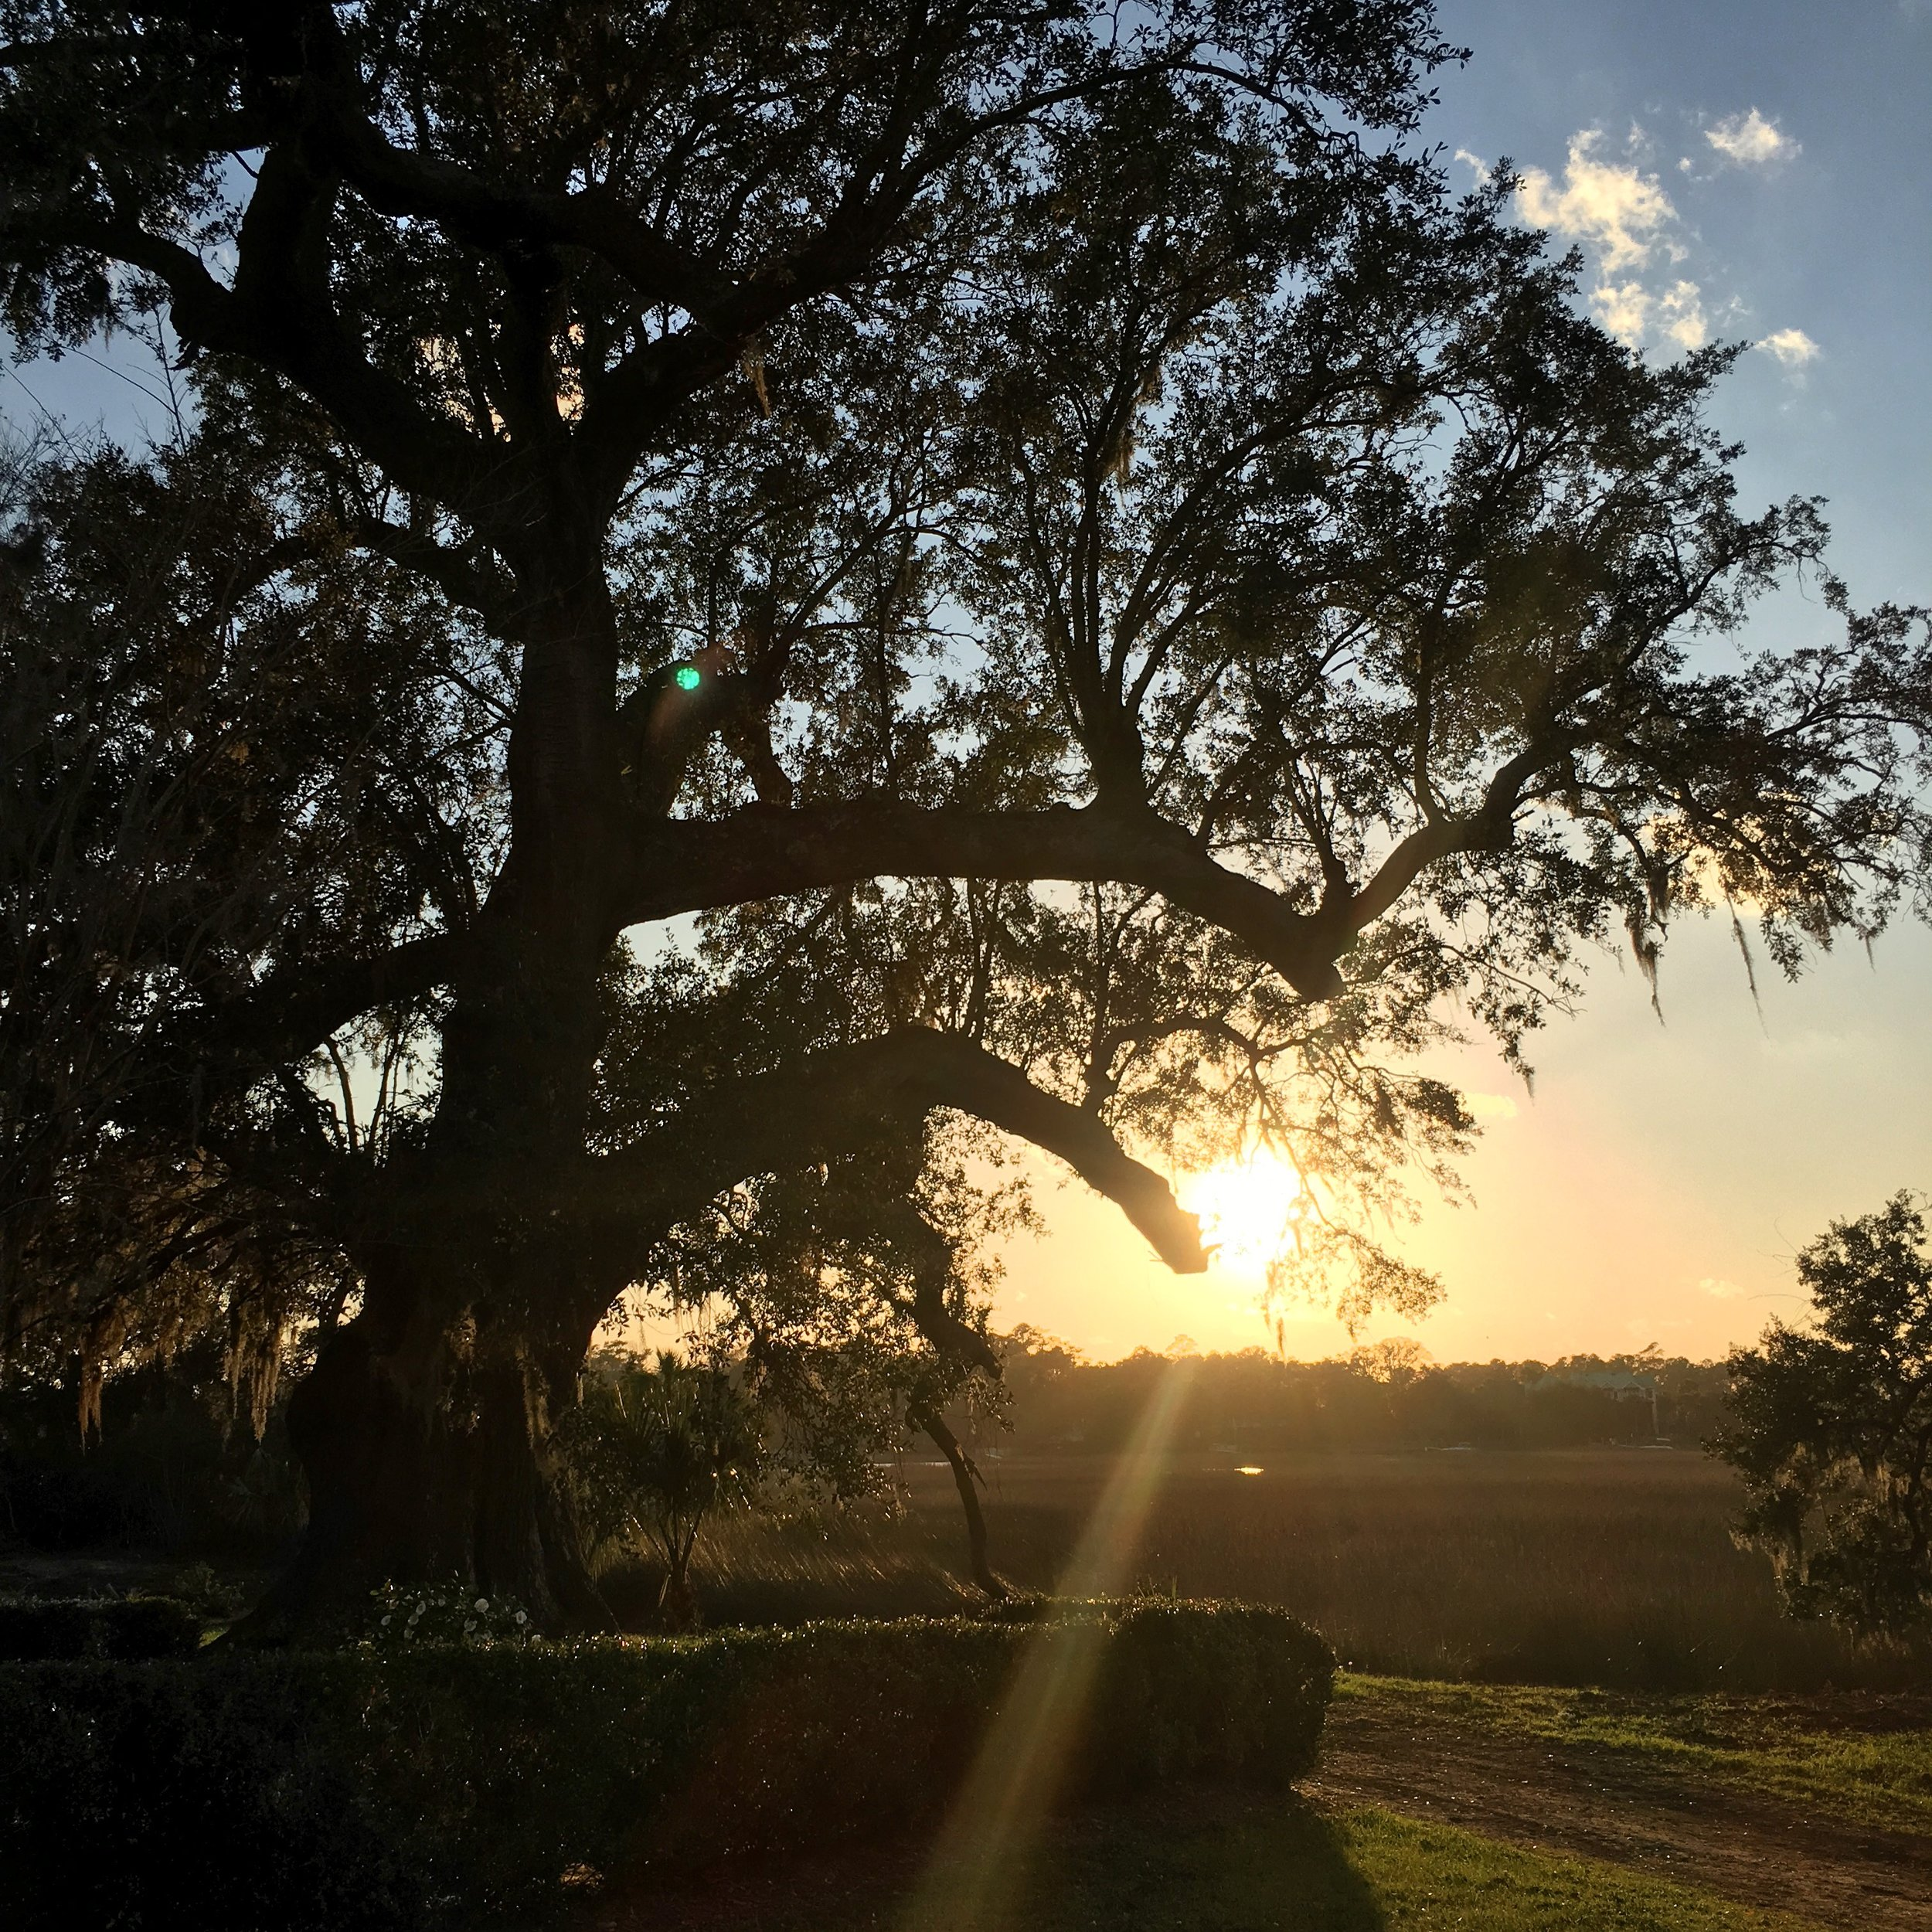 I captured a picture of the sunset and this tree, which is between 400-500 years old!